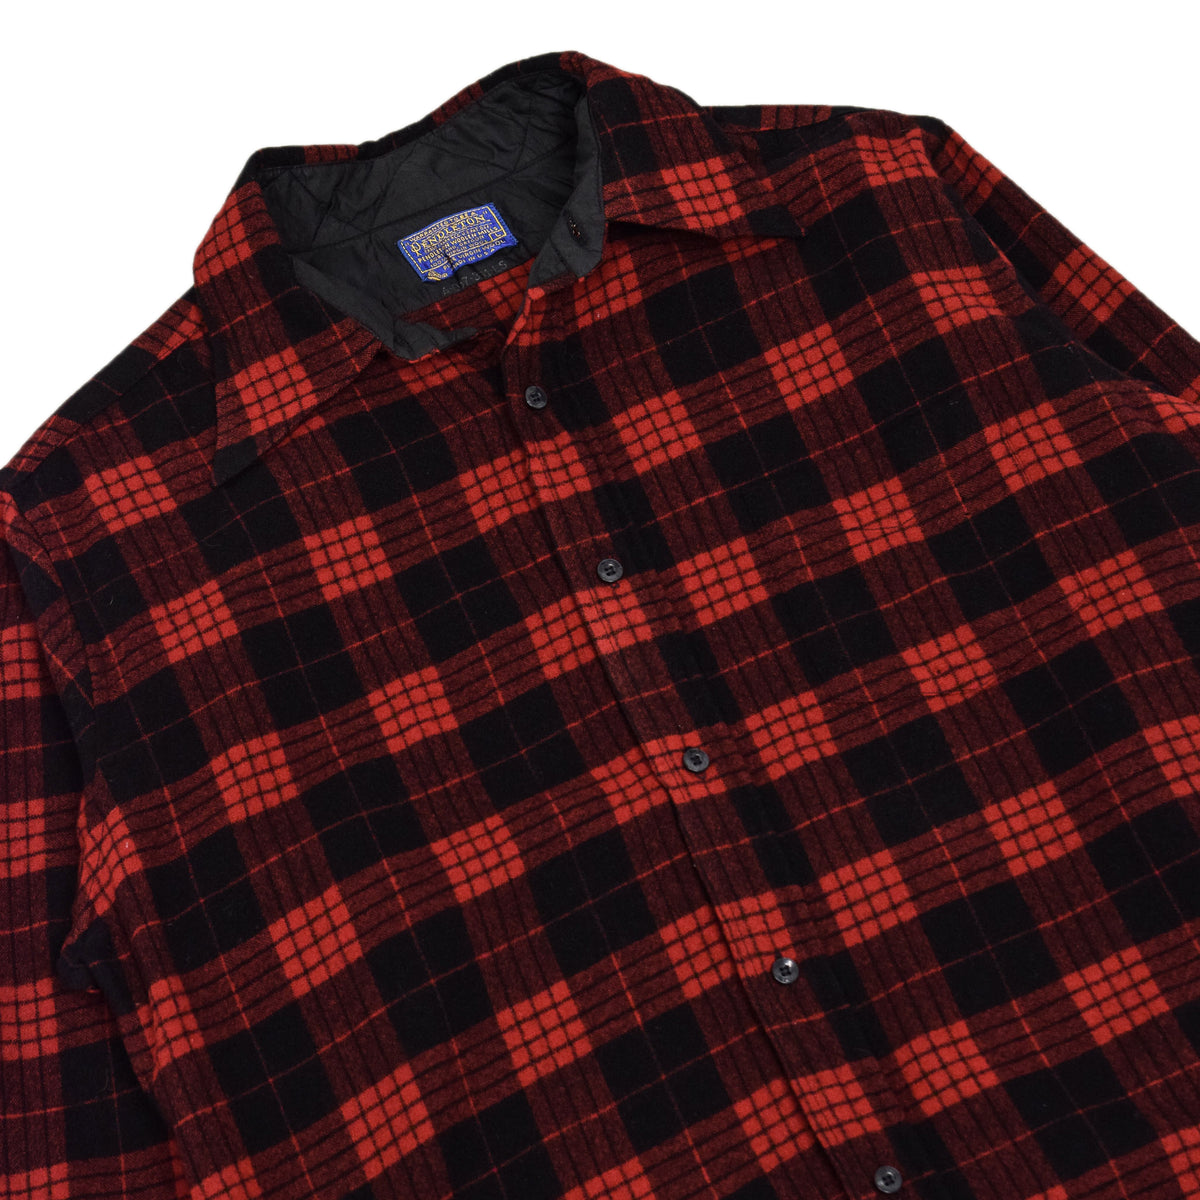 Vintage Pendleton Plaid Long Sleeve Made In USA Pure Virgin Wool Check Shirt L